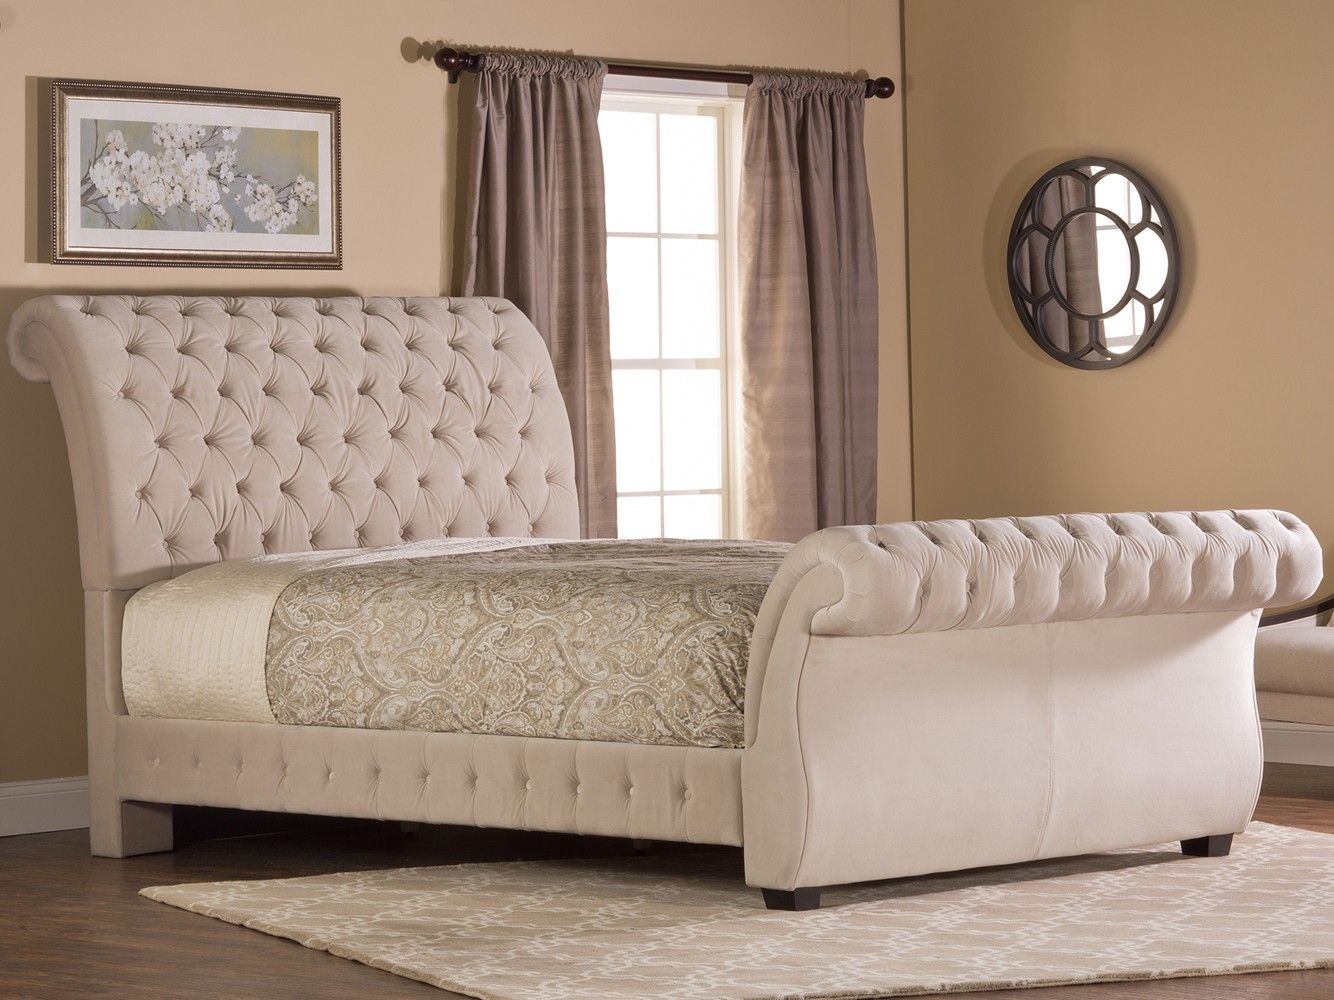 Bombay fabric upholstered bed in buckwheat by hillsdale for Upholstered beds